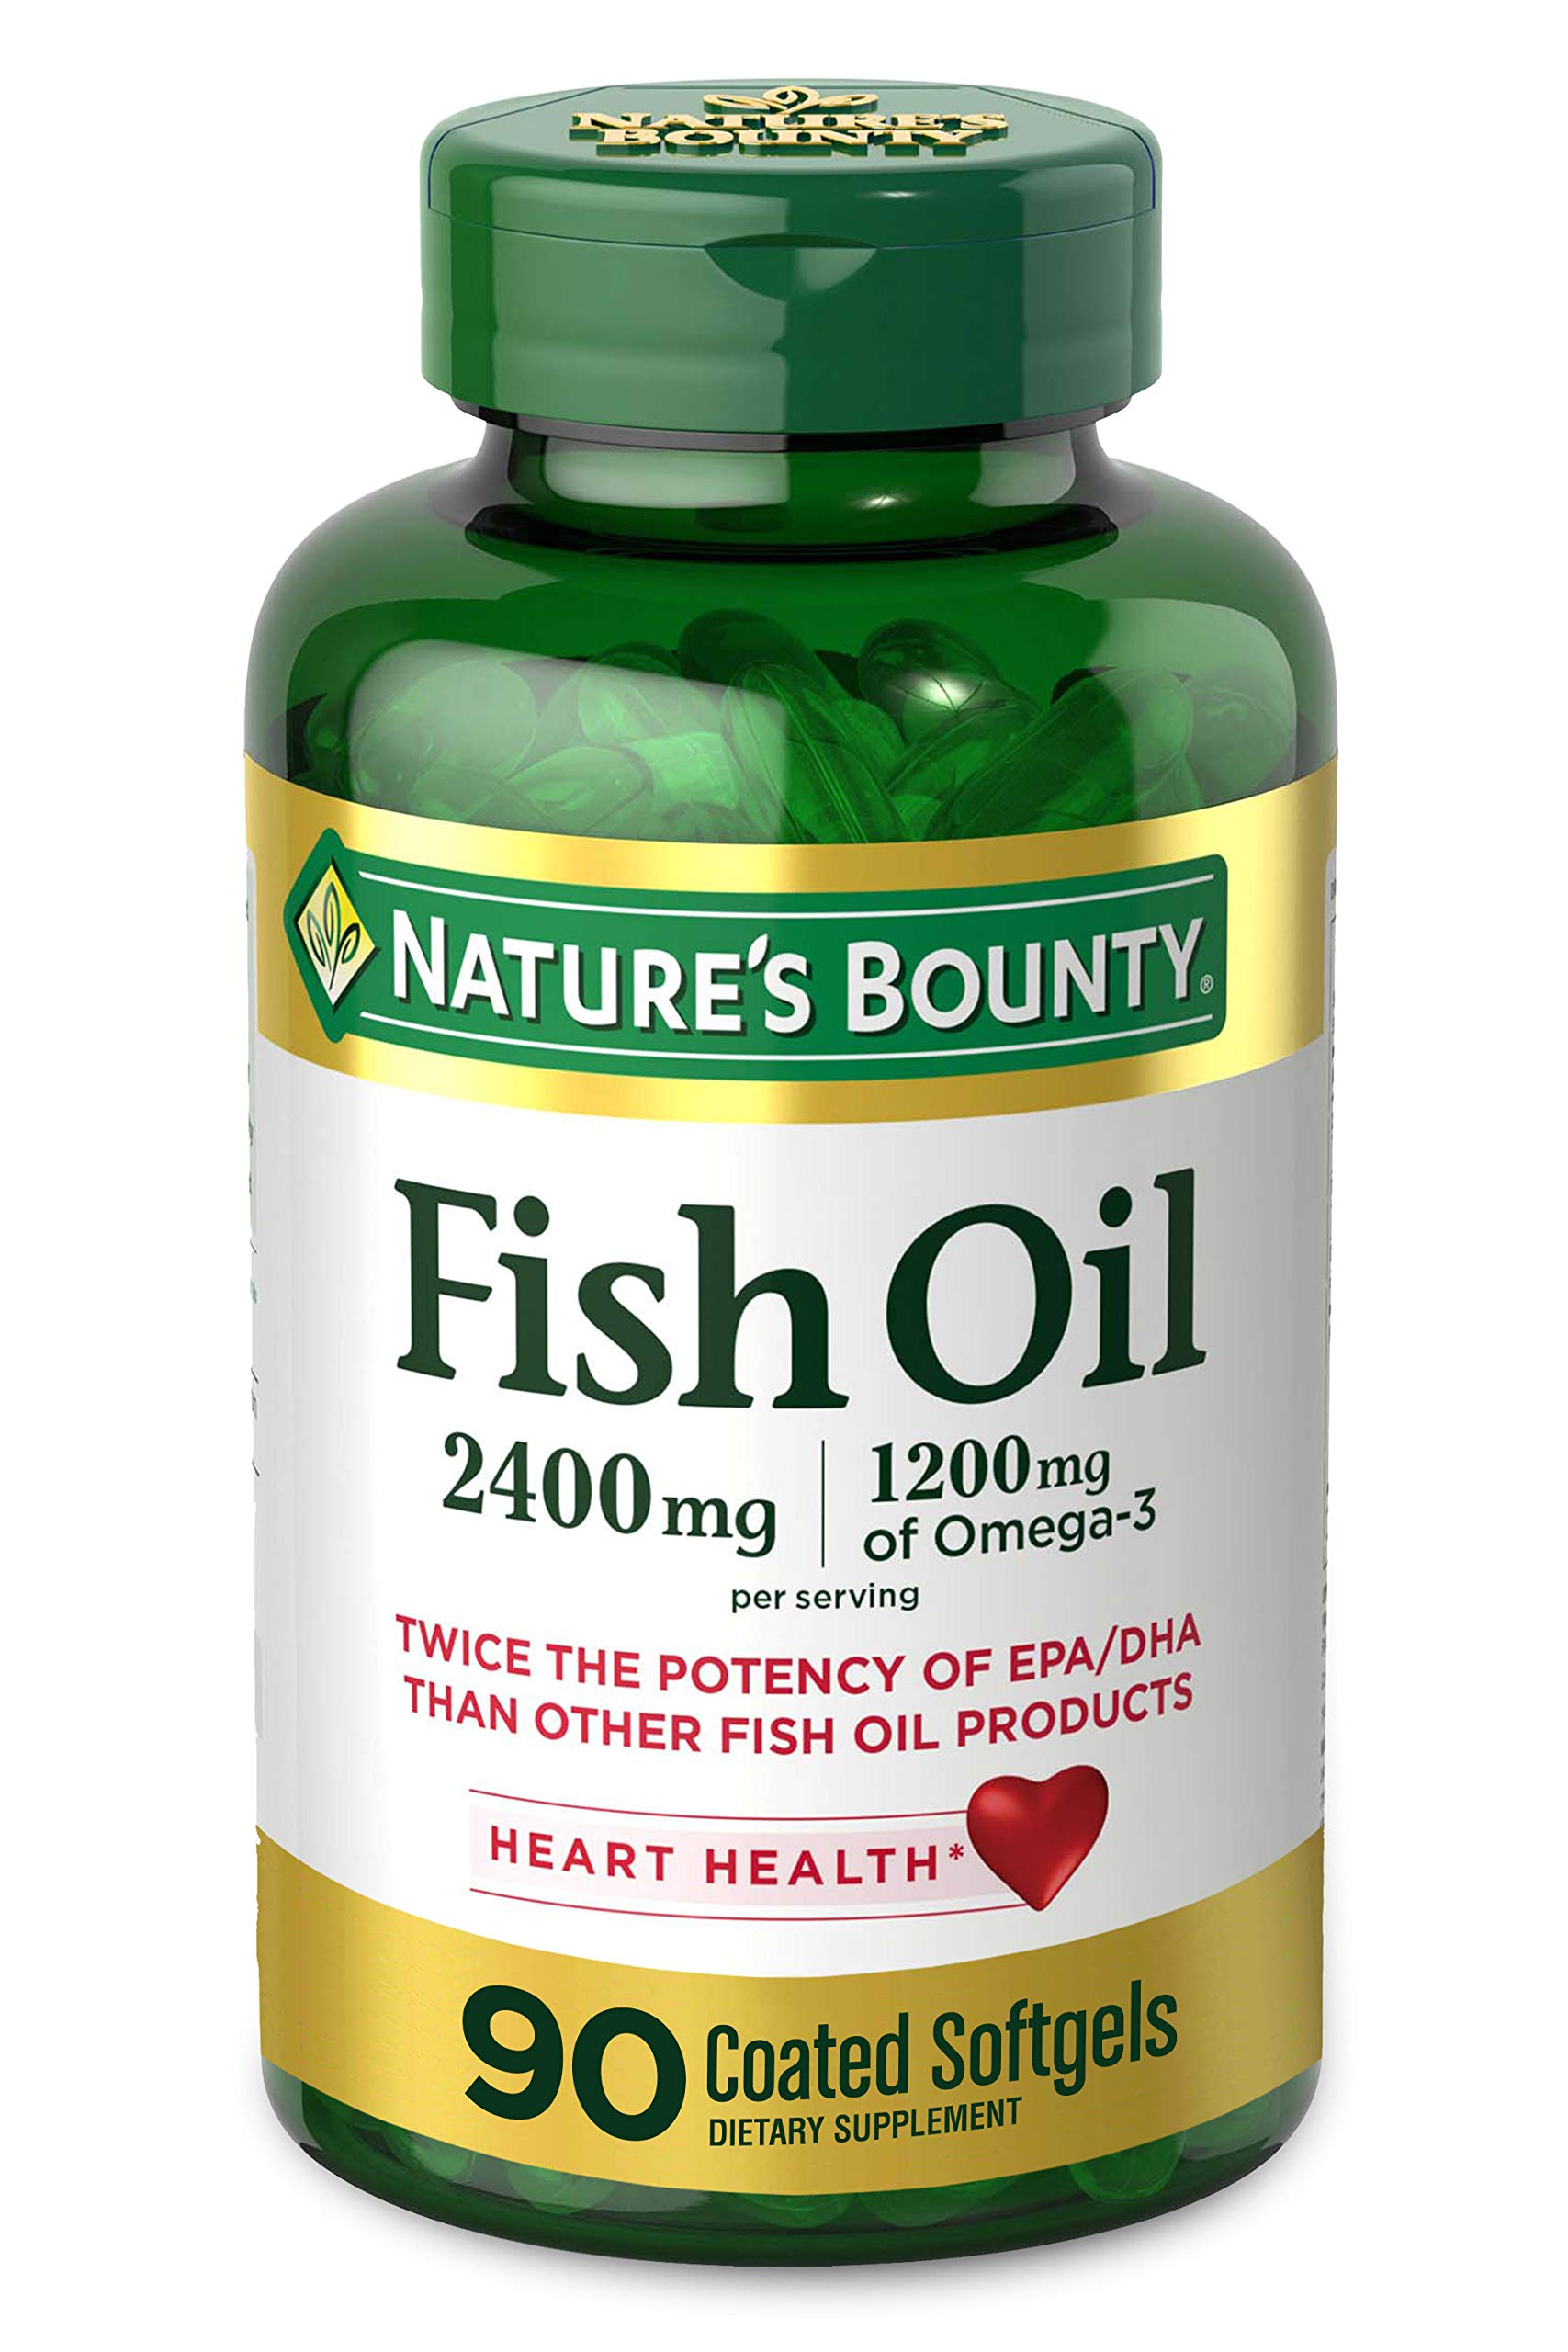 Nature's Bounty Fish Oil, 2400mg, 1200mg of Omega-3, 90 Coated Softgels